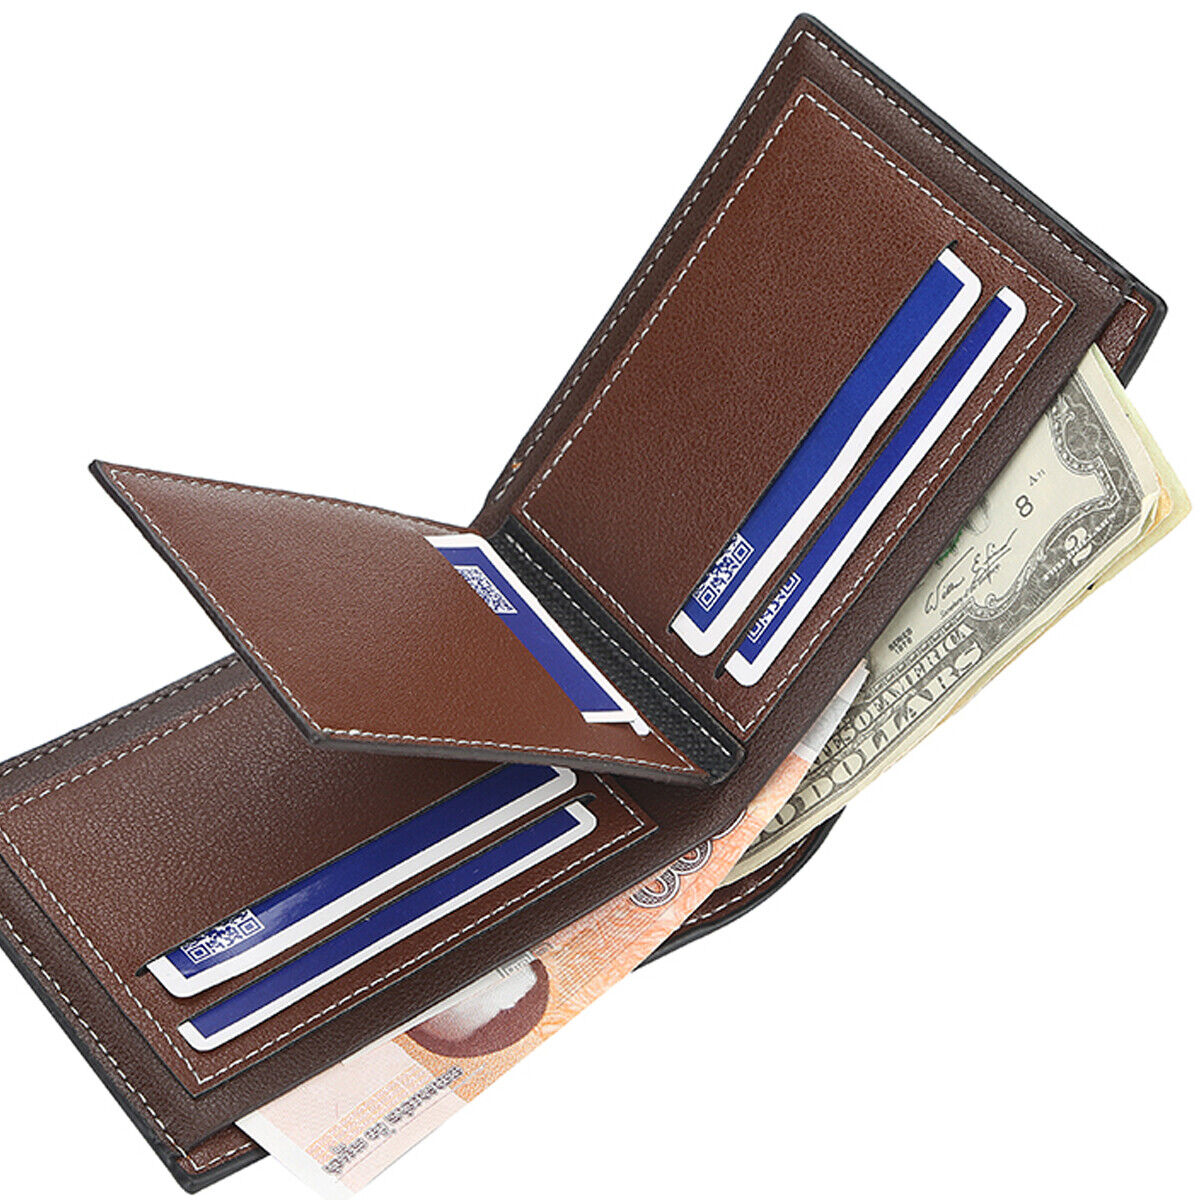 Men's Leather Bifold ID Card Holder Purse Wallet Billfold Handbag Slim Clutch US Clothing, Shoes & Accessories